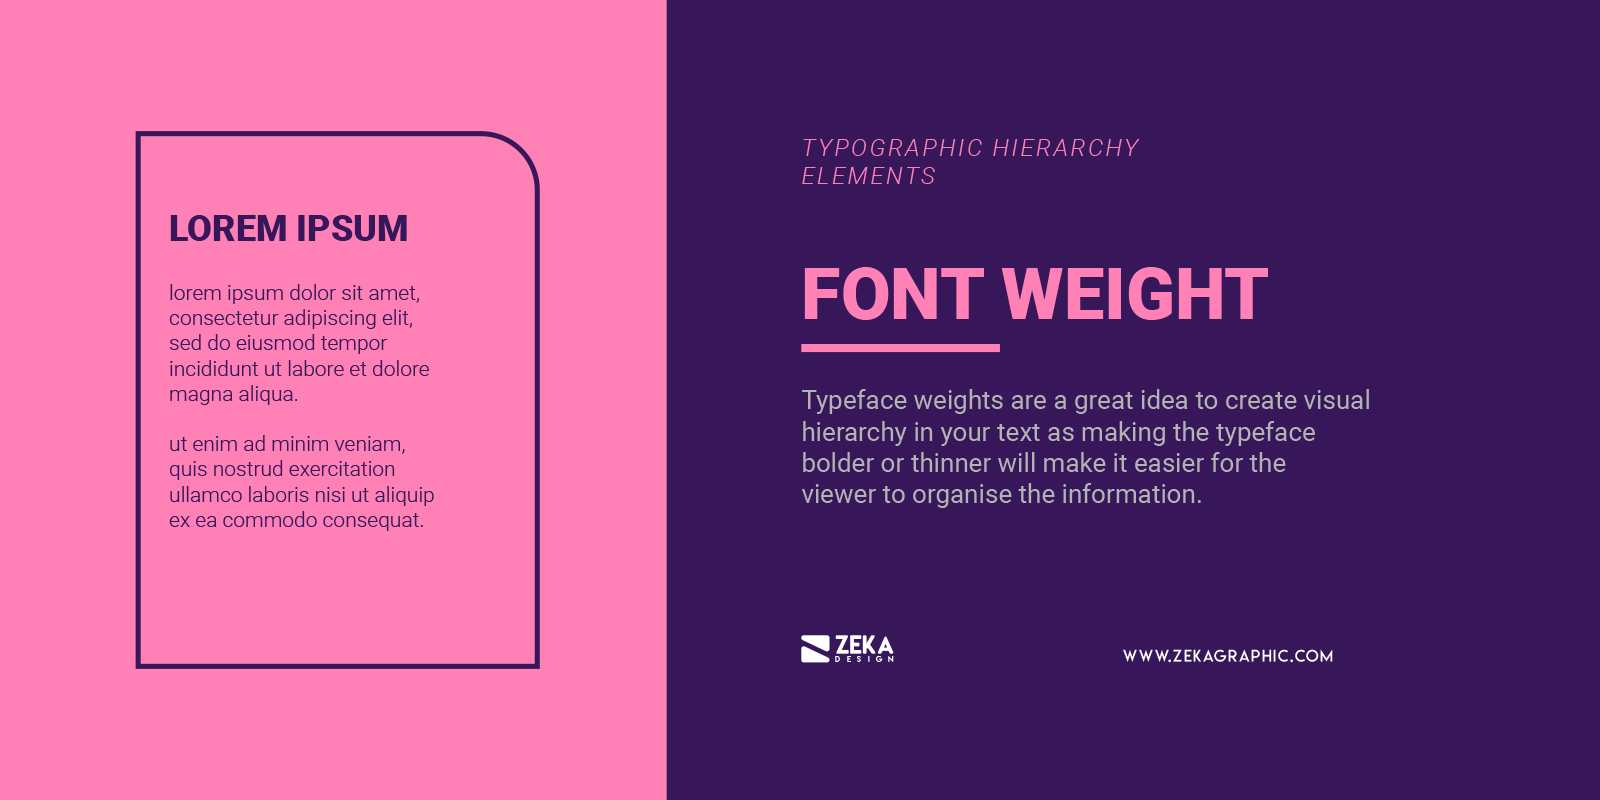 Font Weight for Typographic Hierarchy